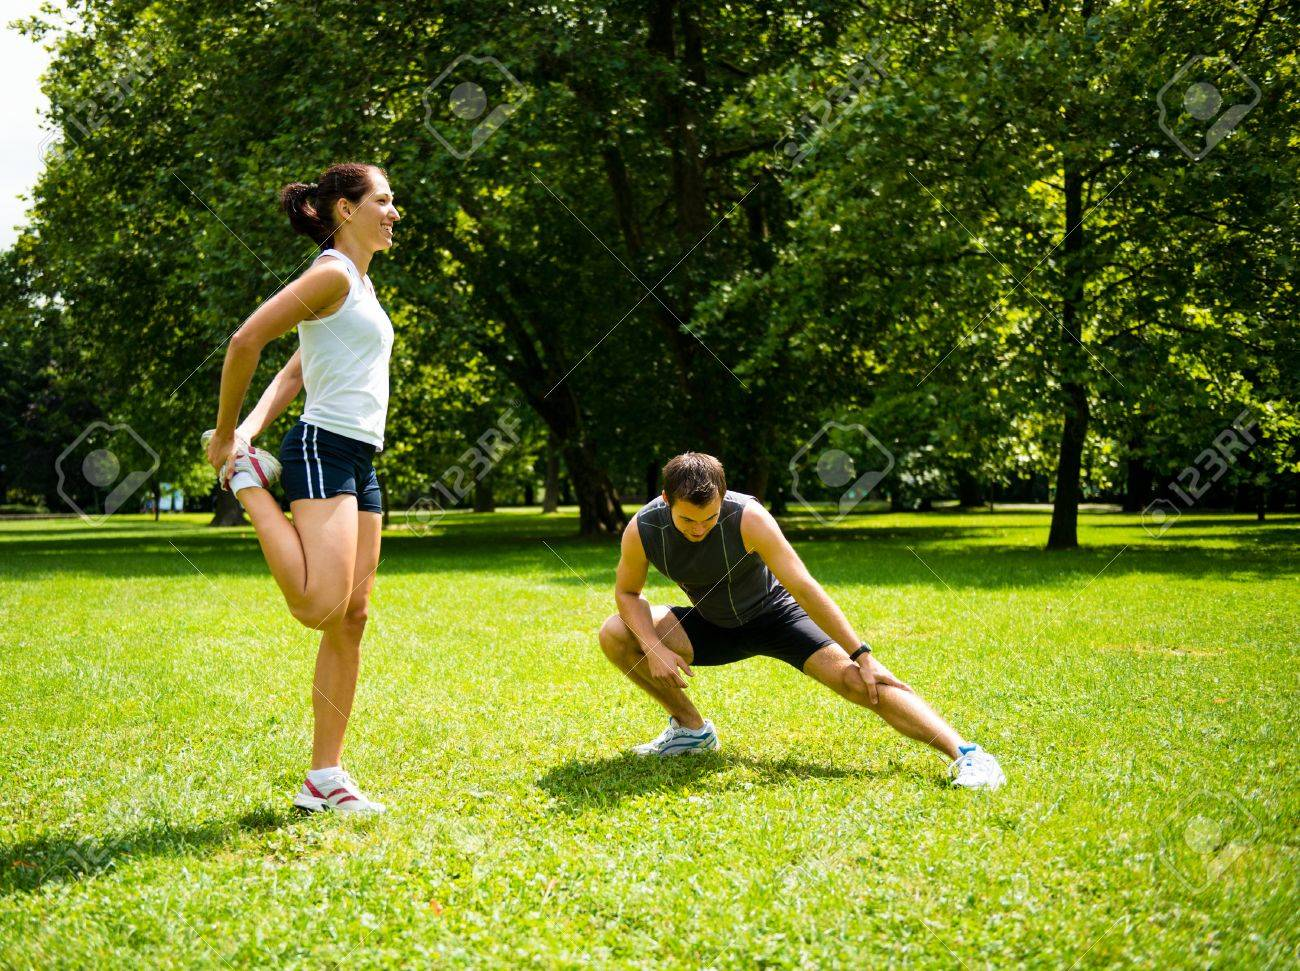 Young couple exercising and stretching muscles before sport activity - outdoor in nature - 52577735